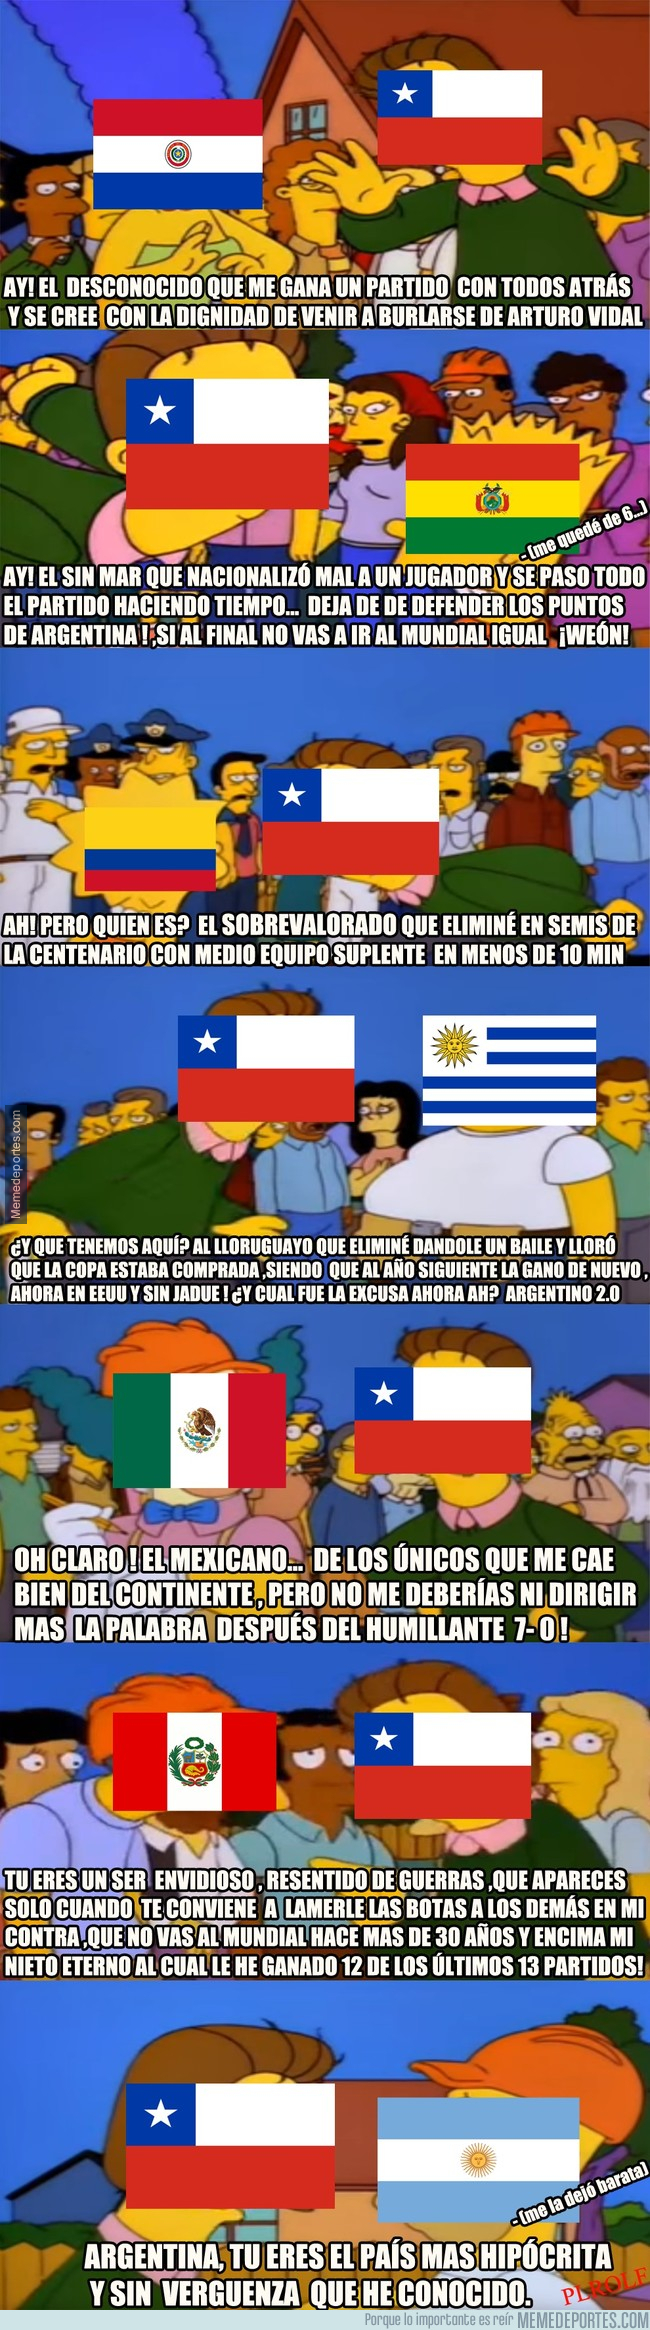 997099 - Chile estallando ante la Conmebol